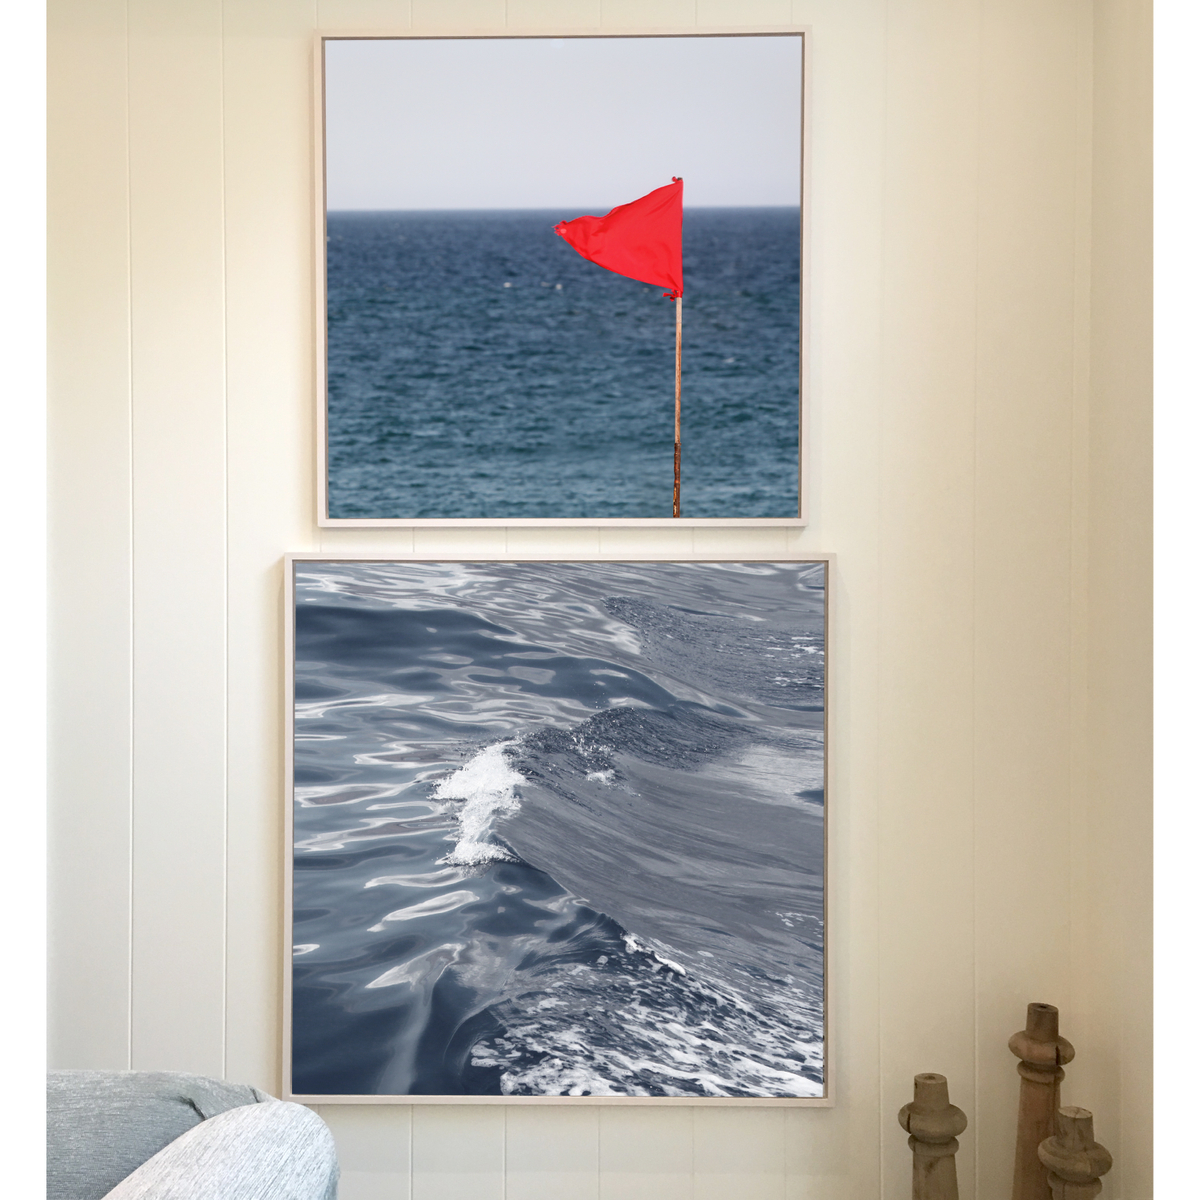 RED FLAG & OCEAN SERIES No. 3